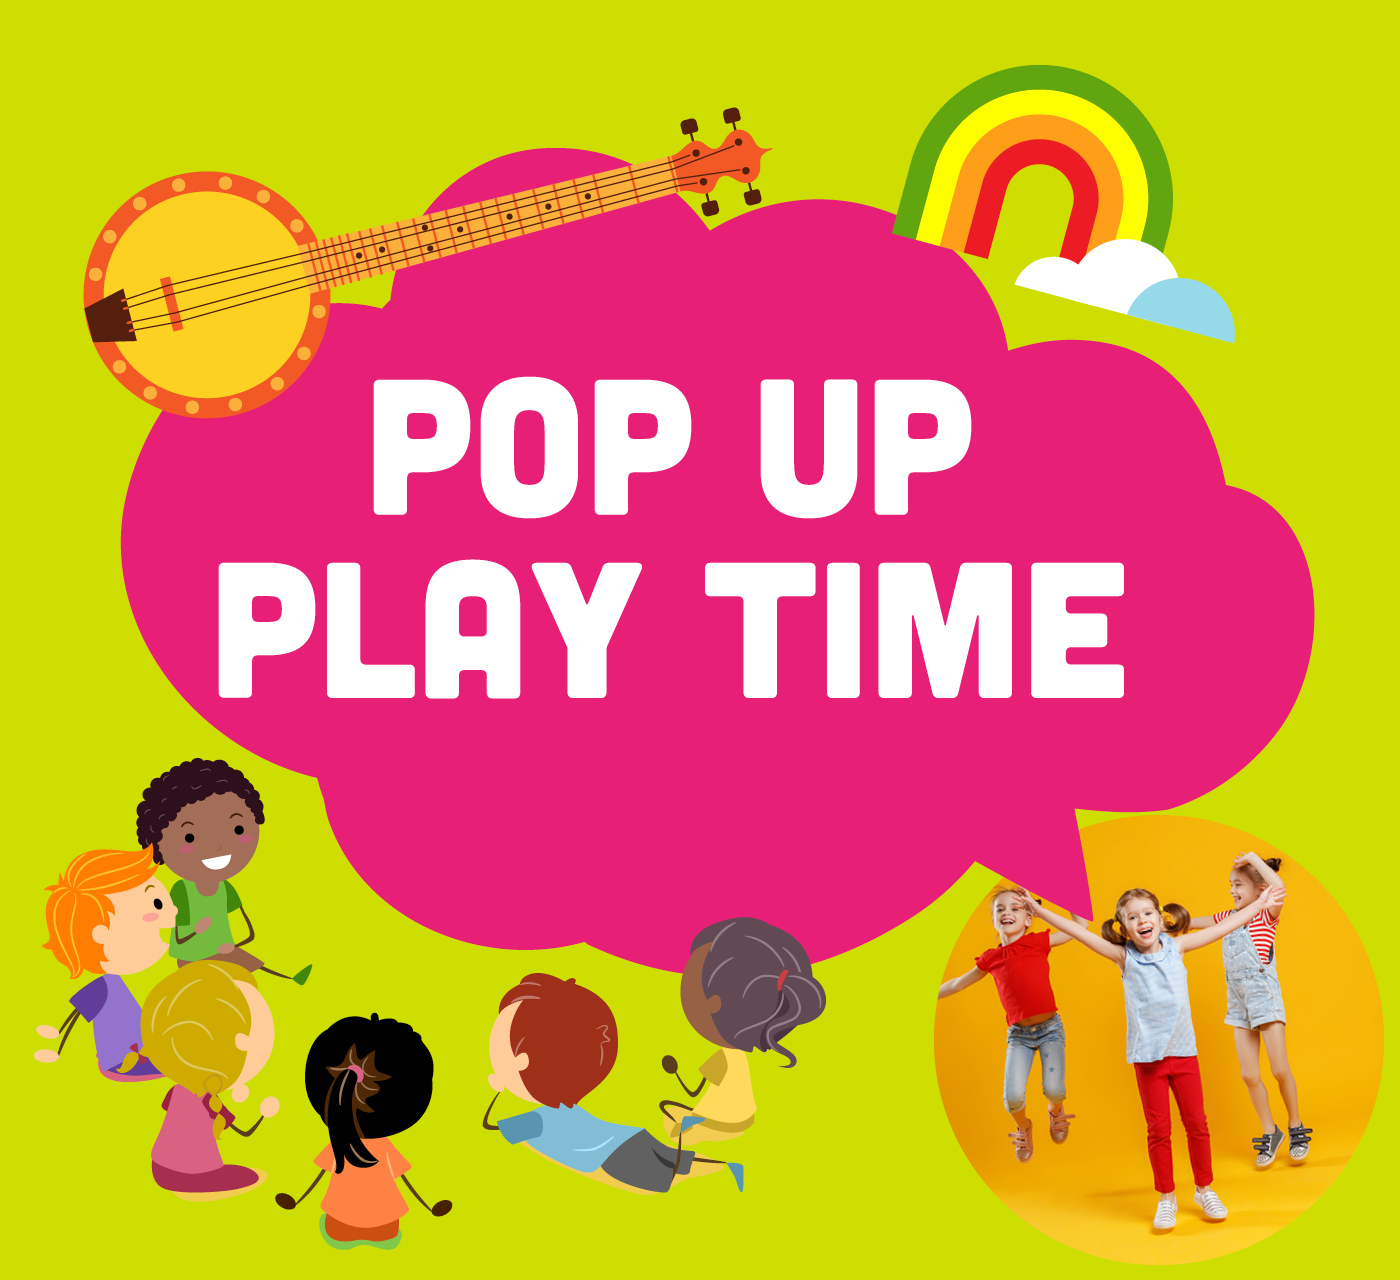 Pop Up Play Time